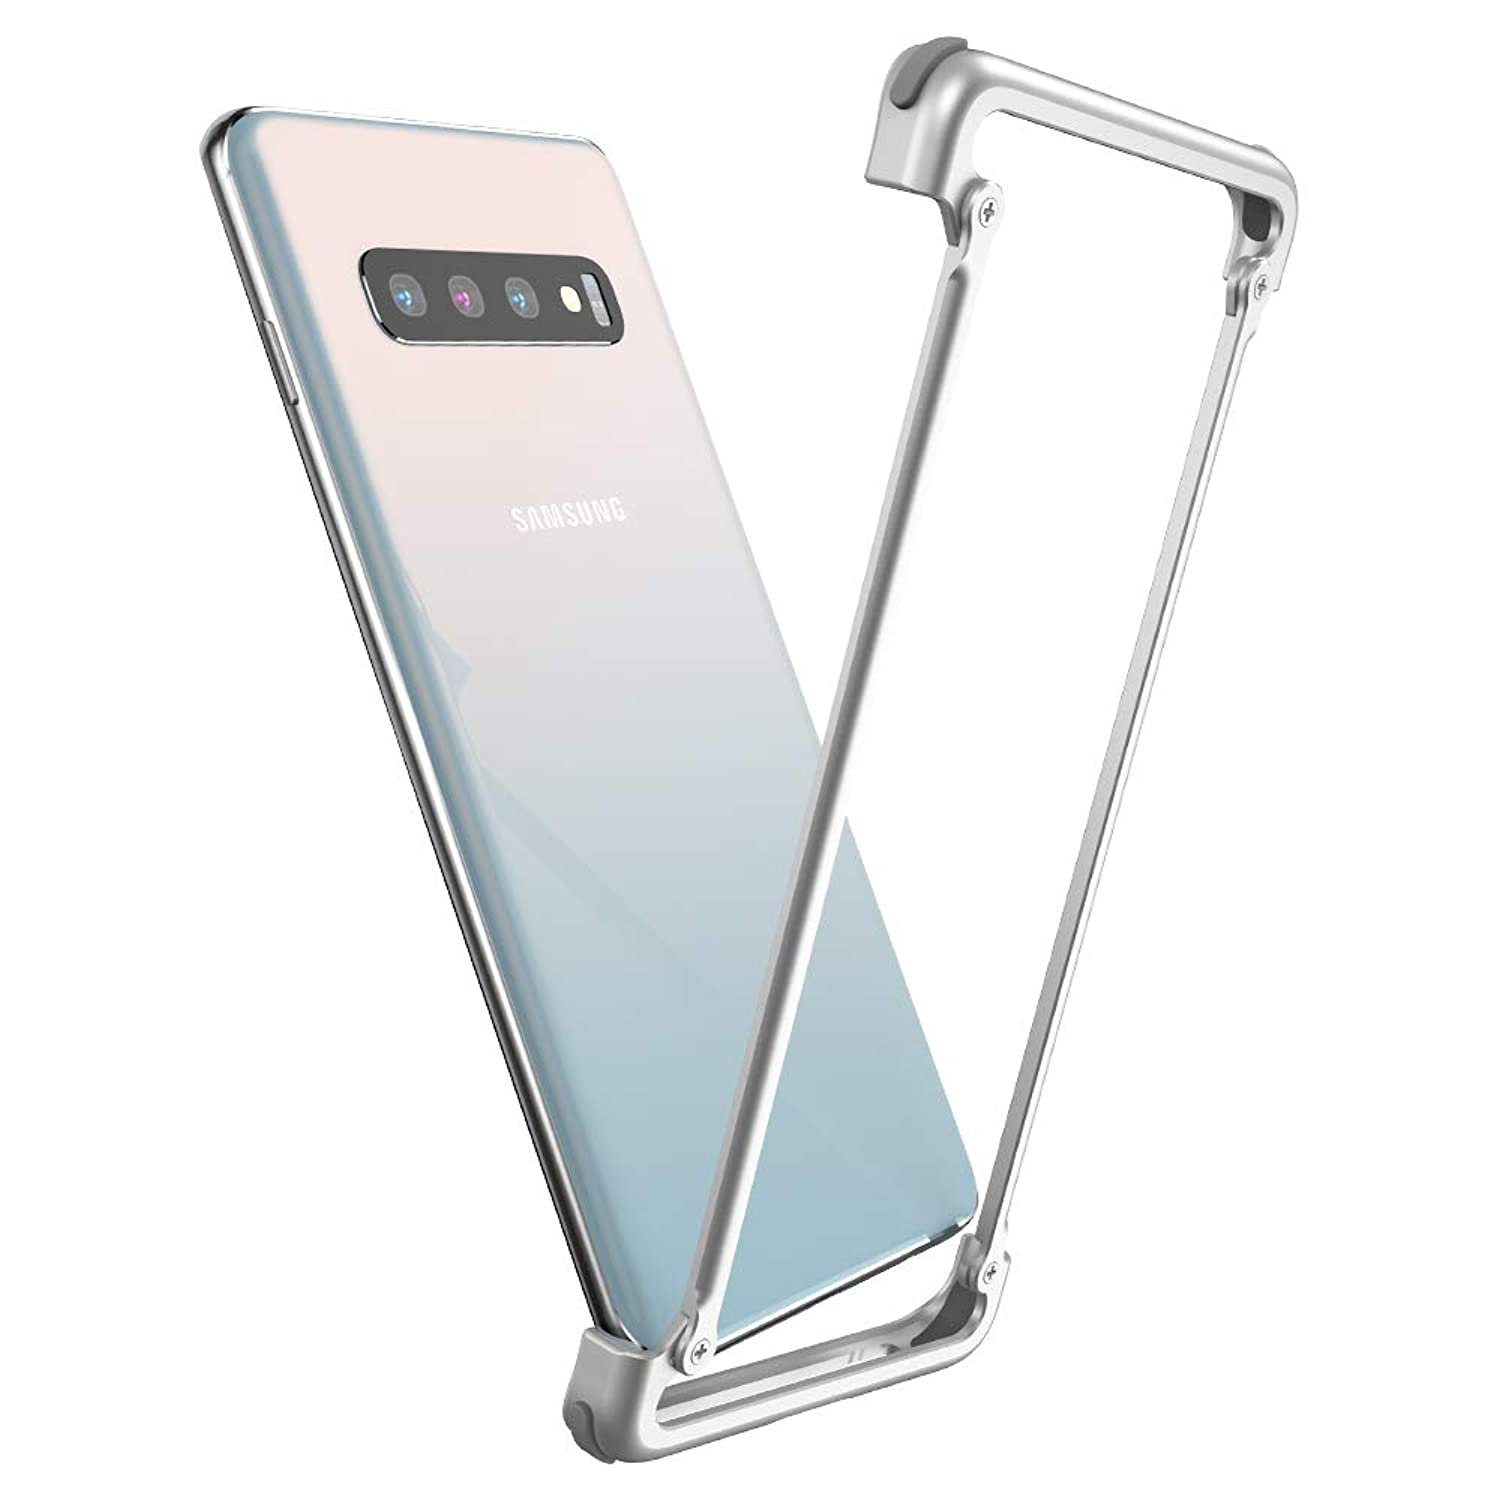 OATSBASF Phone Case Compatible for Samsung S10 Plus, Eege Bumper Series Compatible for Samsung S10 Plus, Shock Absorption Edge Case Support Wireless Charging with Screen Protector(Silver)